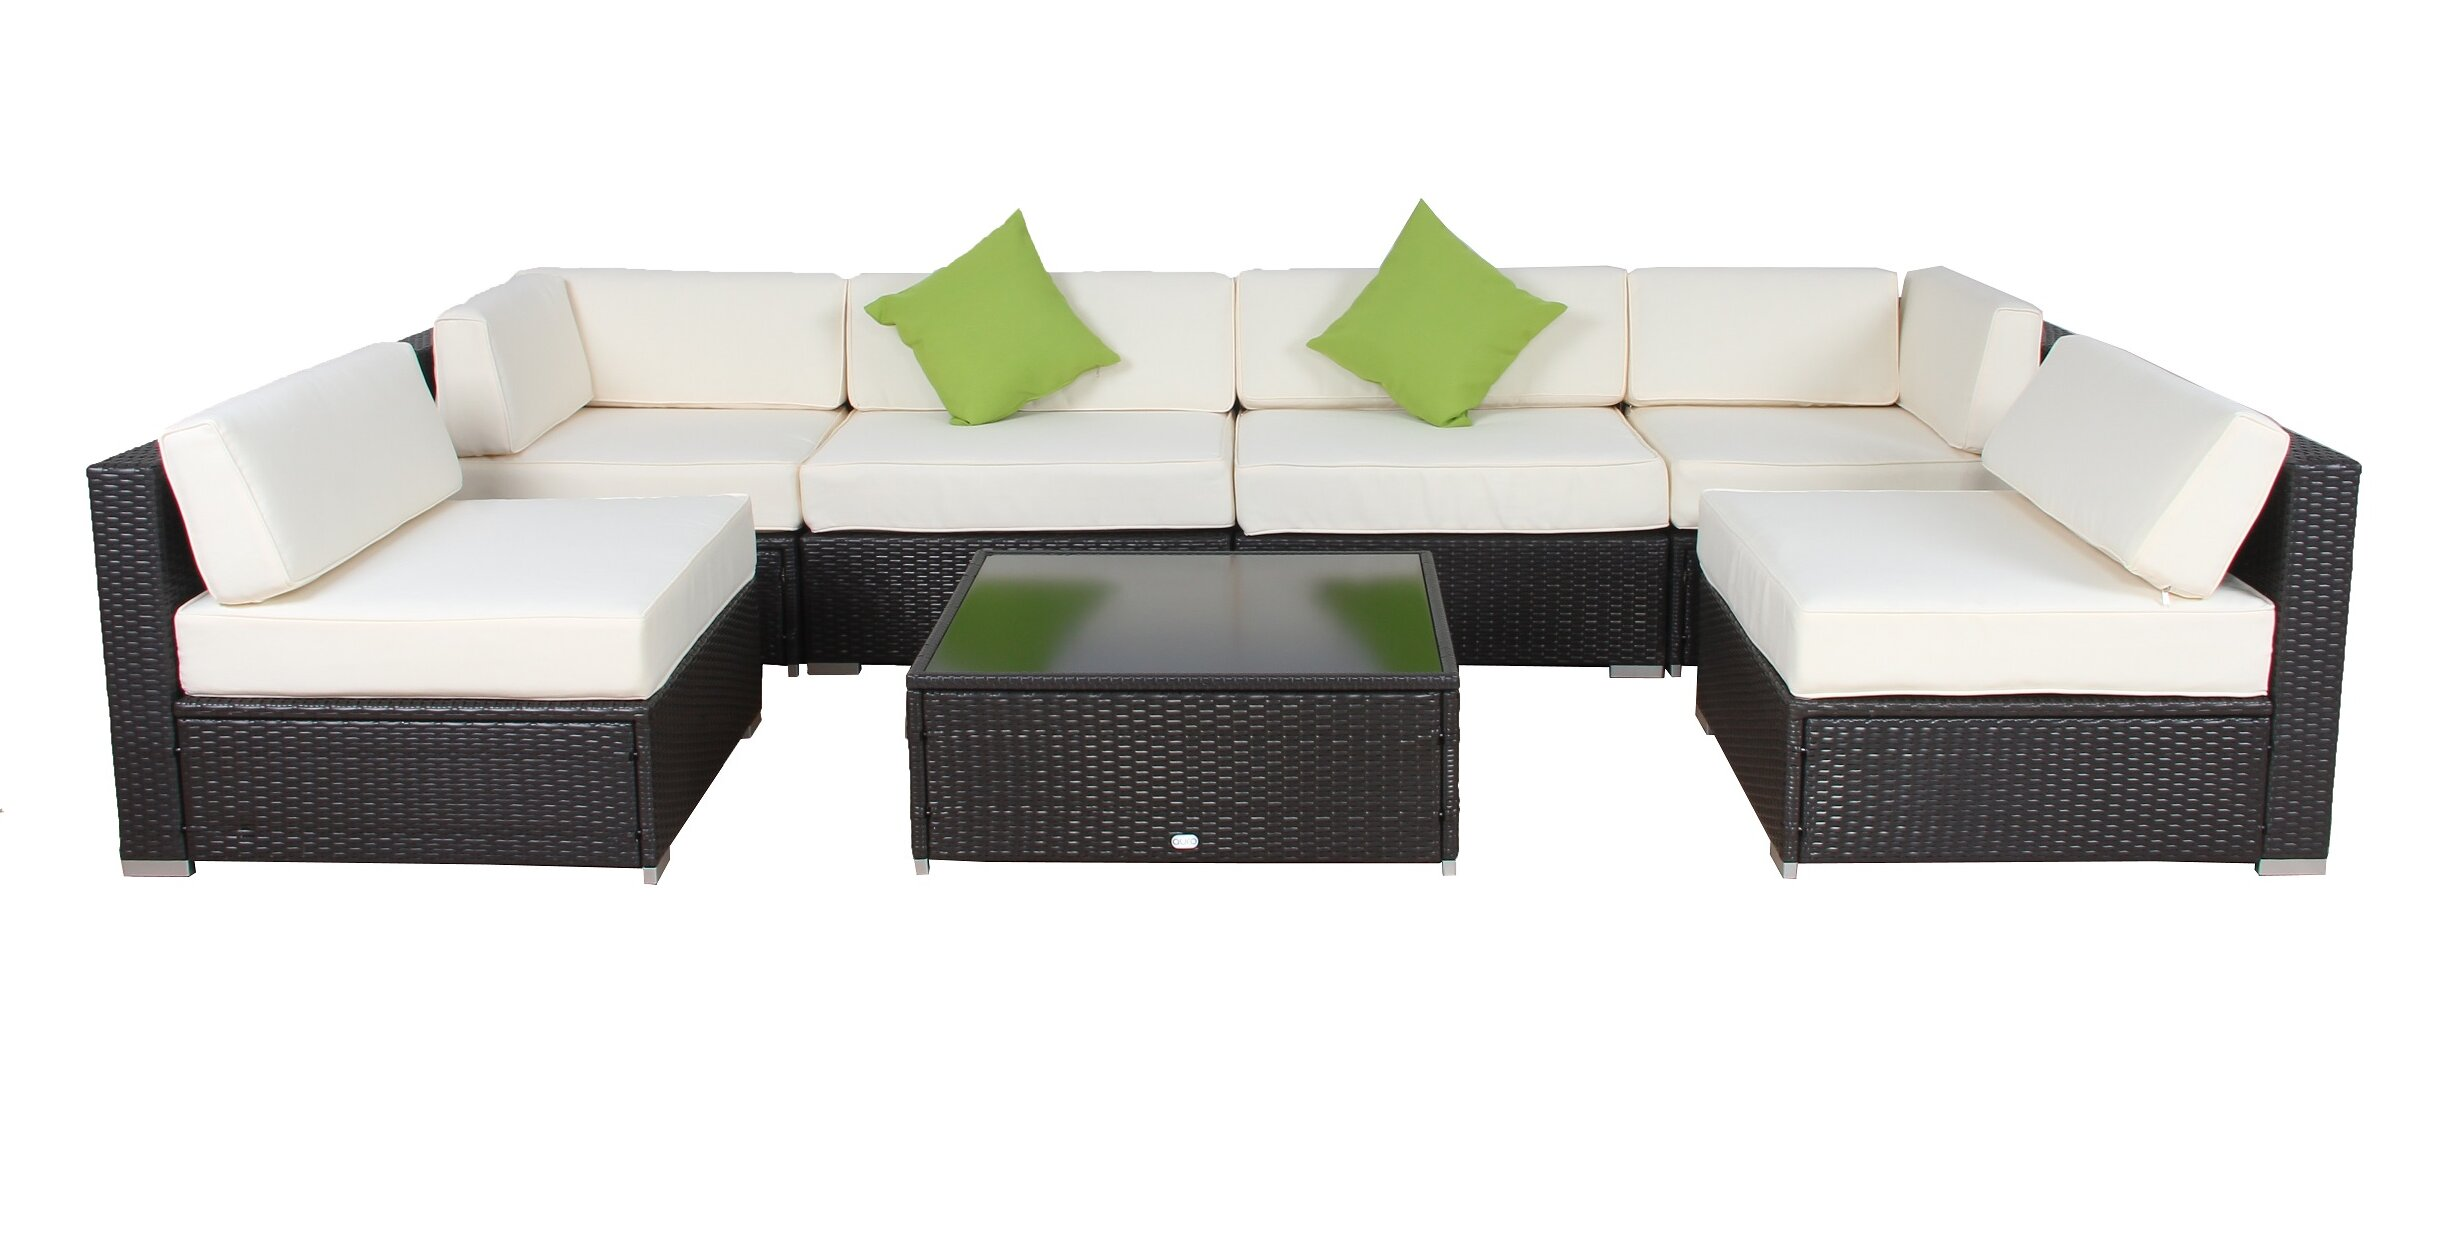 Smithville 9 Piece Rattan Sectional Seating Group With Cushions Reviews Joss Main